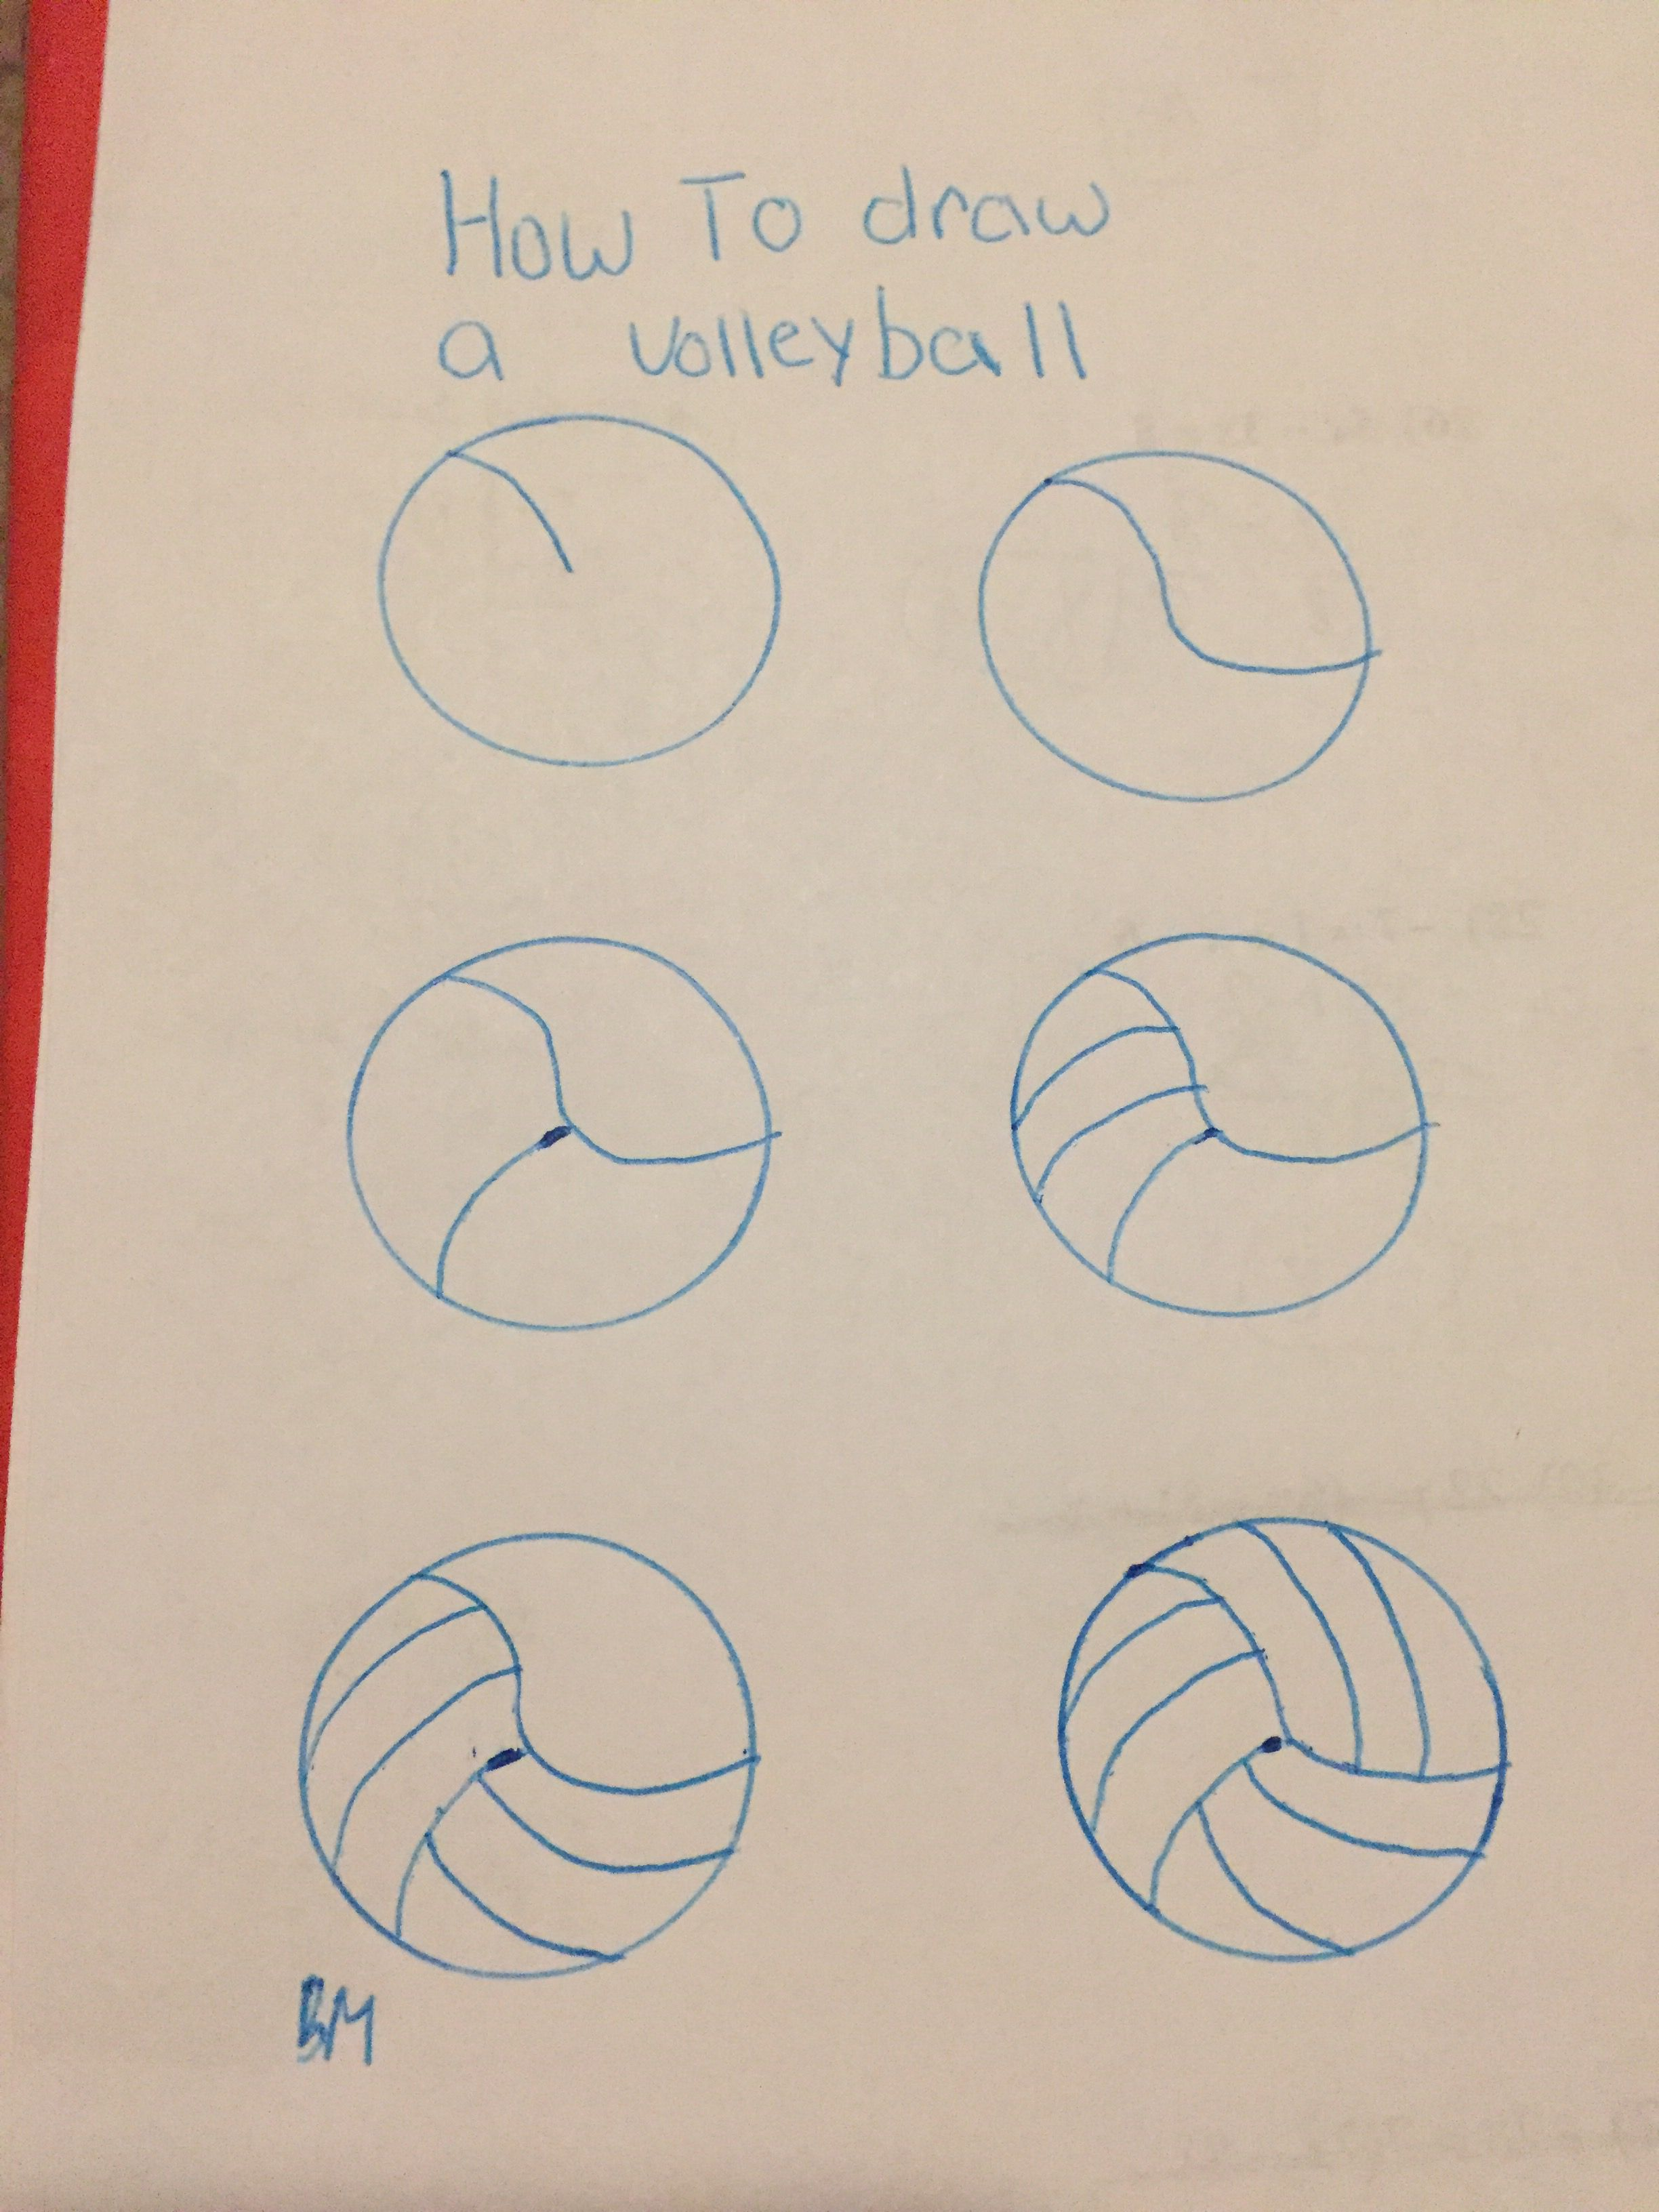 How To Draw A Volleyball Volleyball Drawing Bullet Journal Doodles Ball Drawing